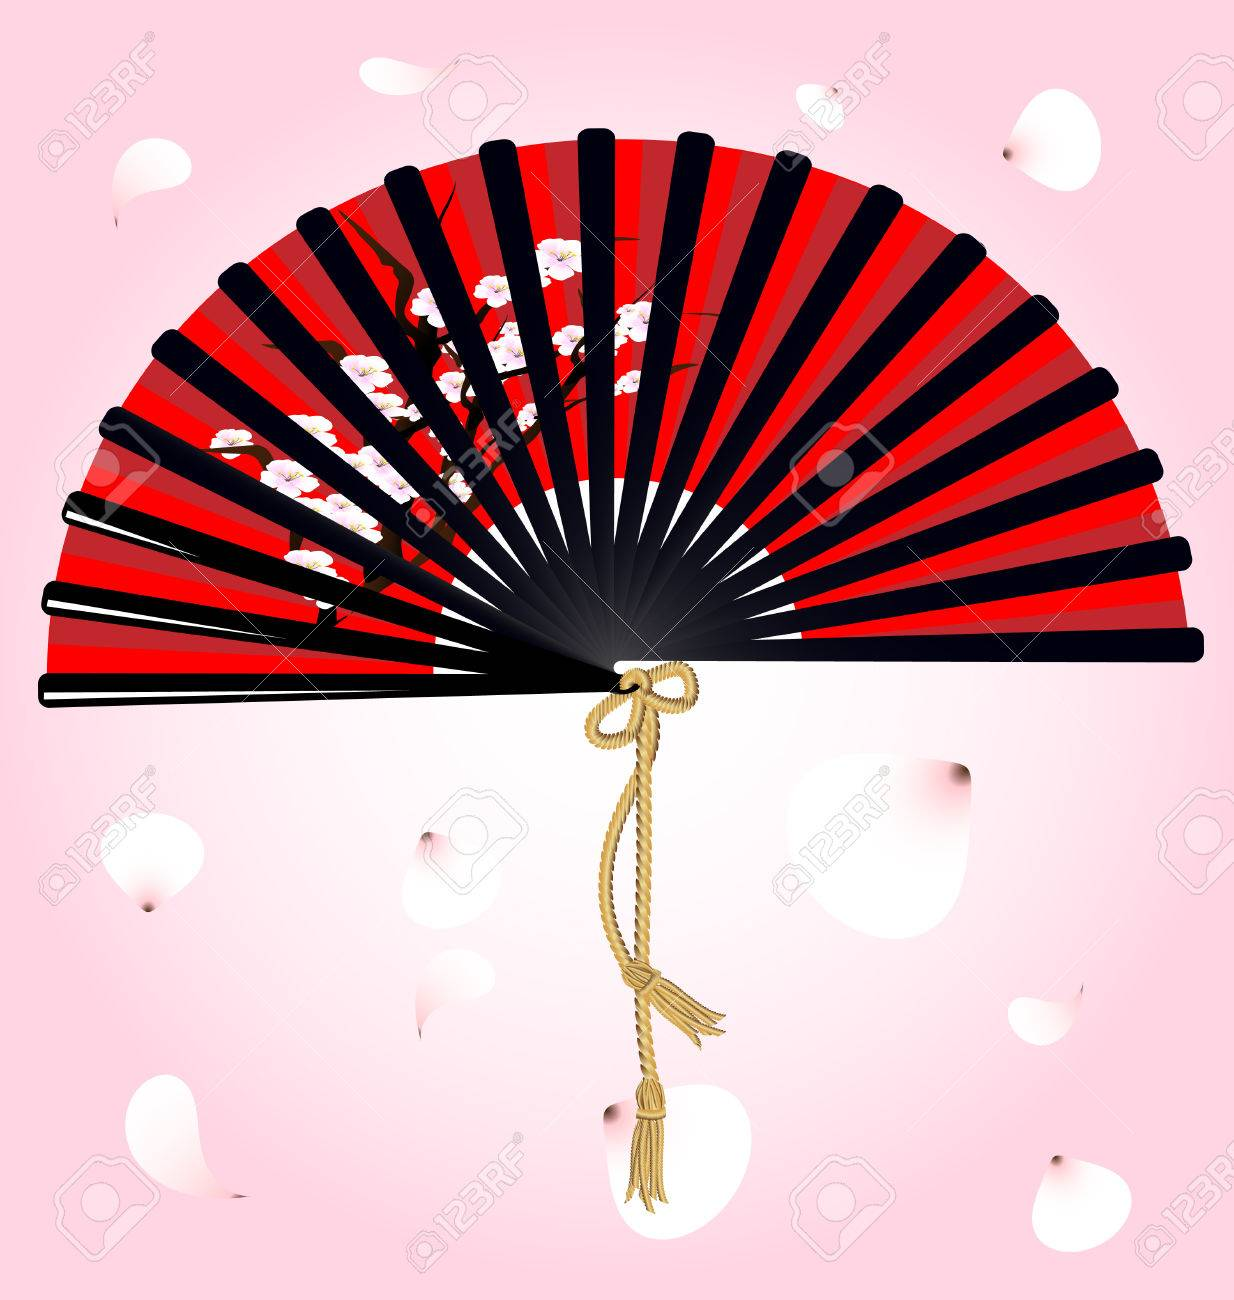 against flying petals large red-black fan with a picture of the cherry blossoms Stock Vector - 8757716